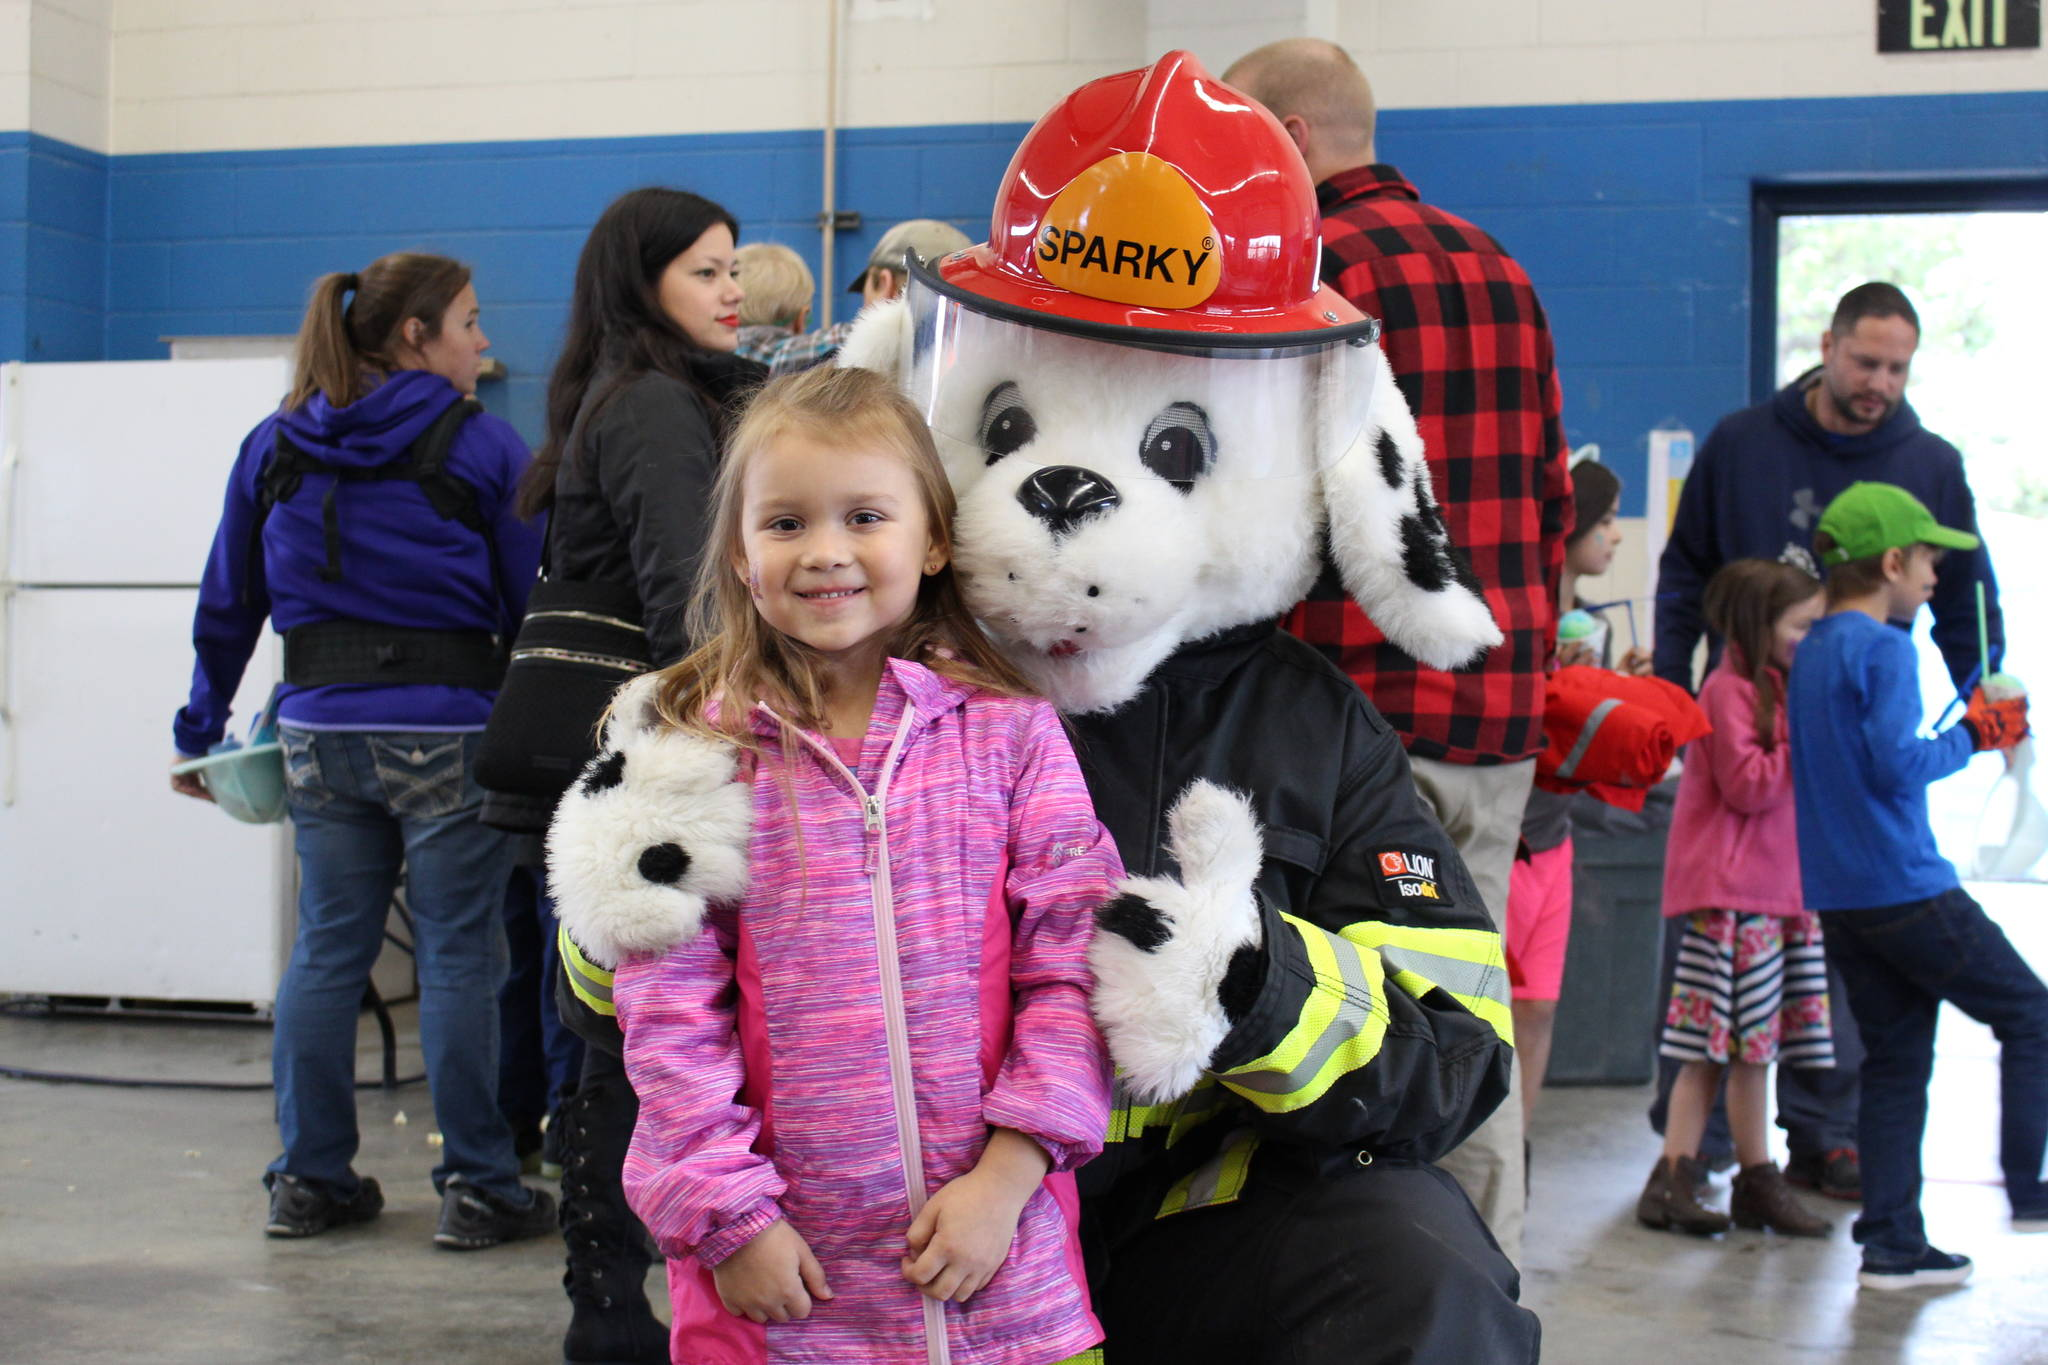 Journie Hoskins-Brendible poses with Sparky the Fire Dog during the Central Emergency Services Open House at Fire Station 1 in Soldotna, Alaska on Sept. 28, 2019. (Photo by Brian Mazurek/Peninsula Clarion)